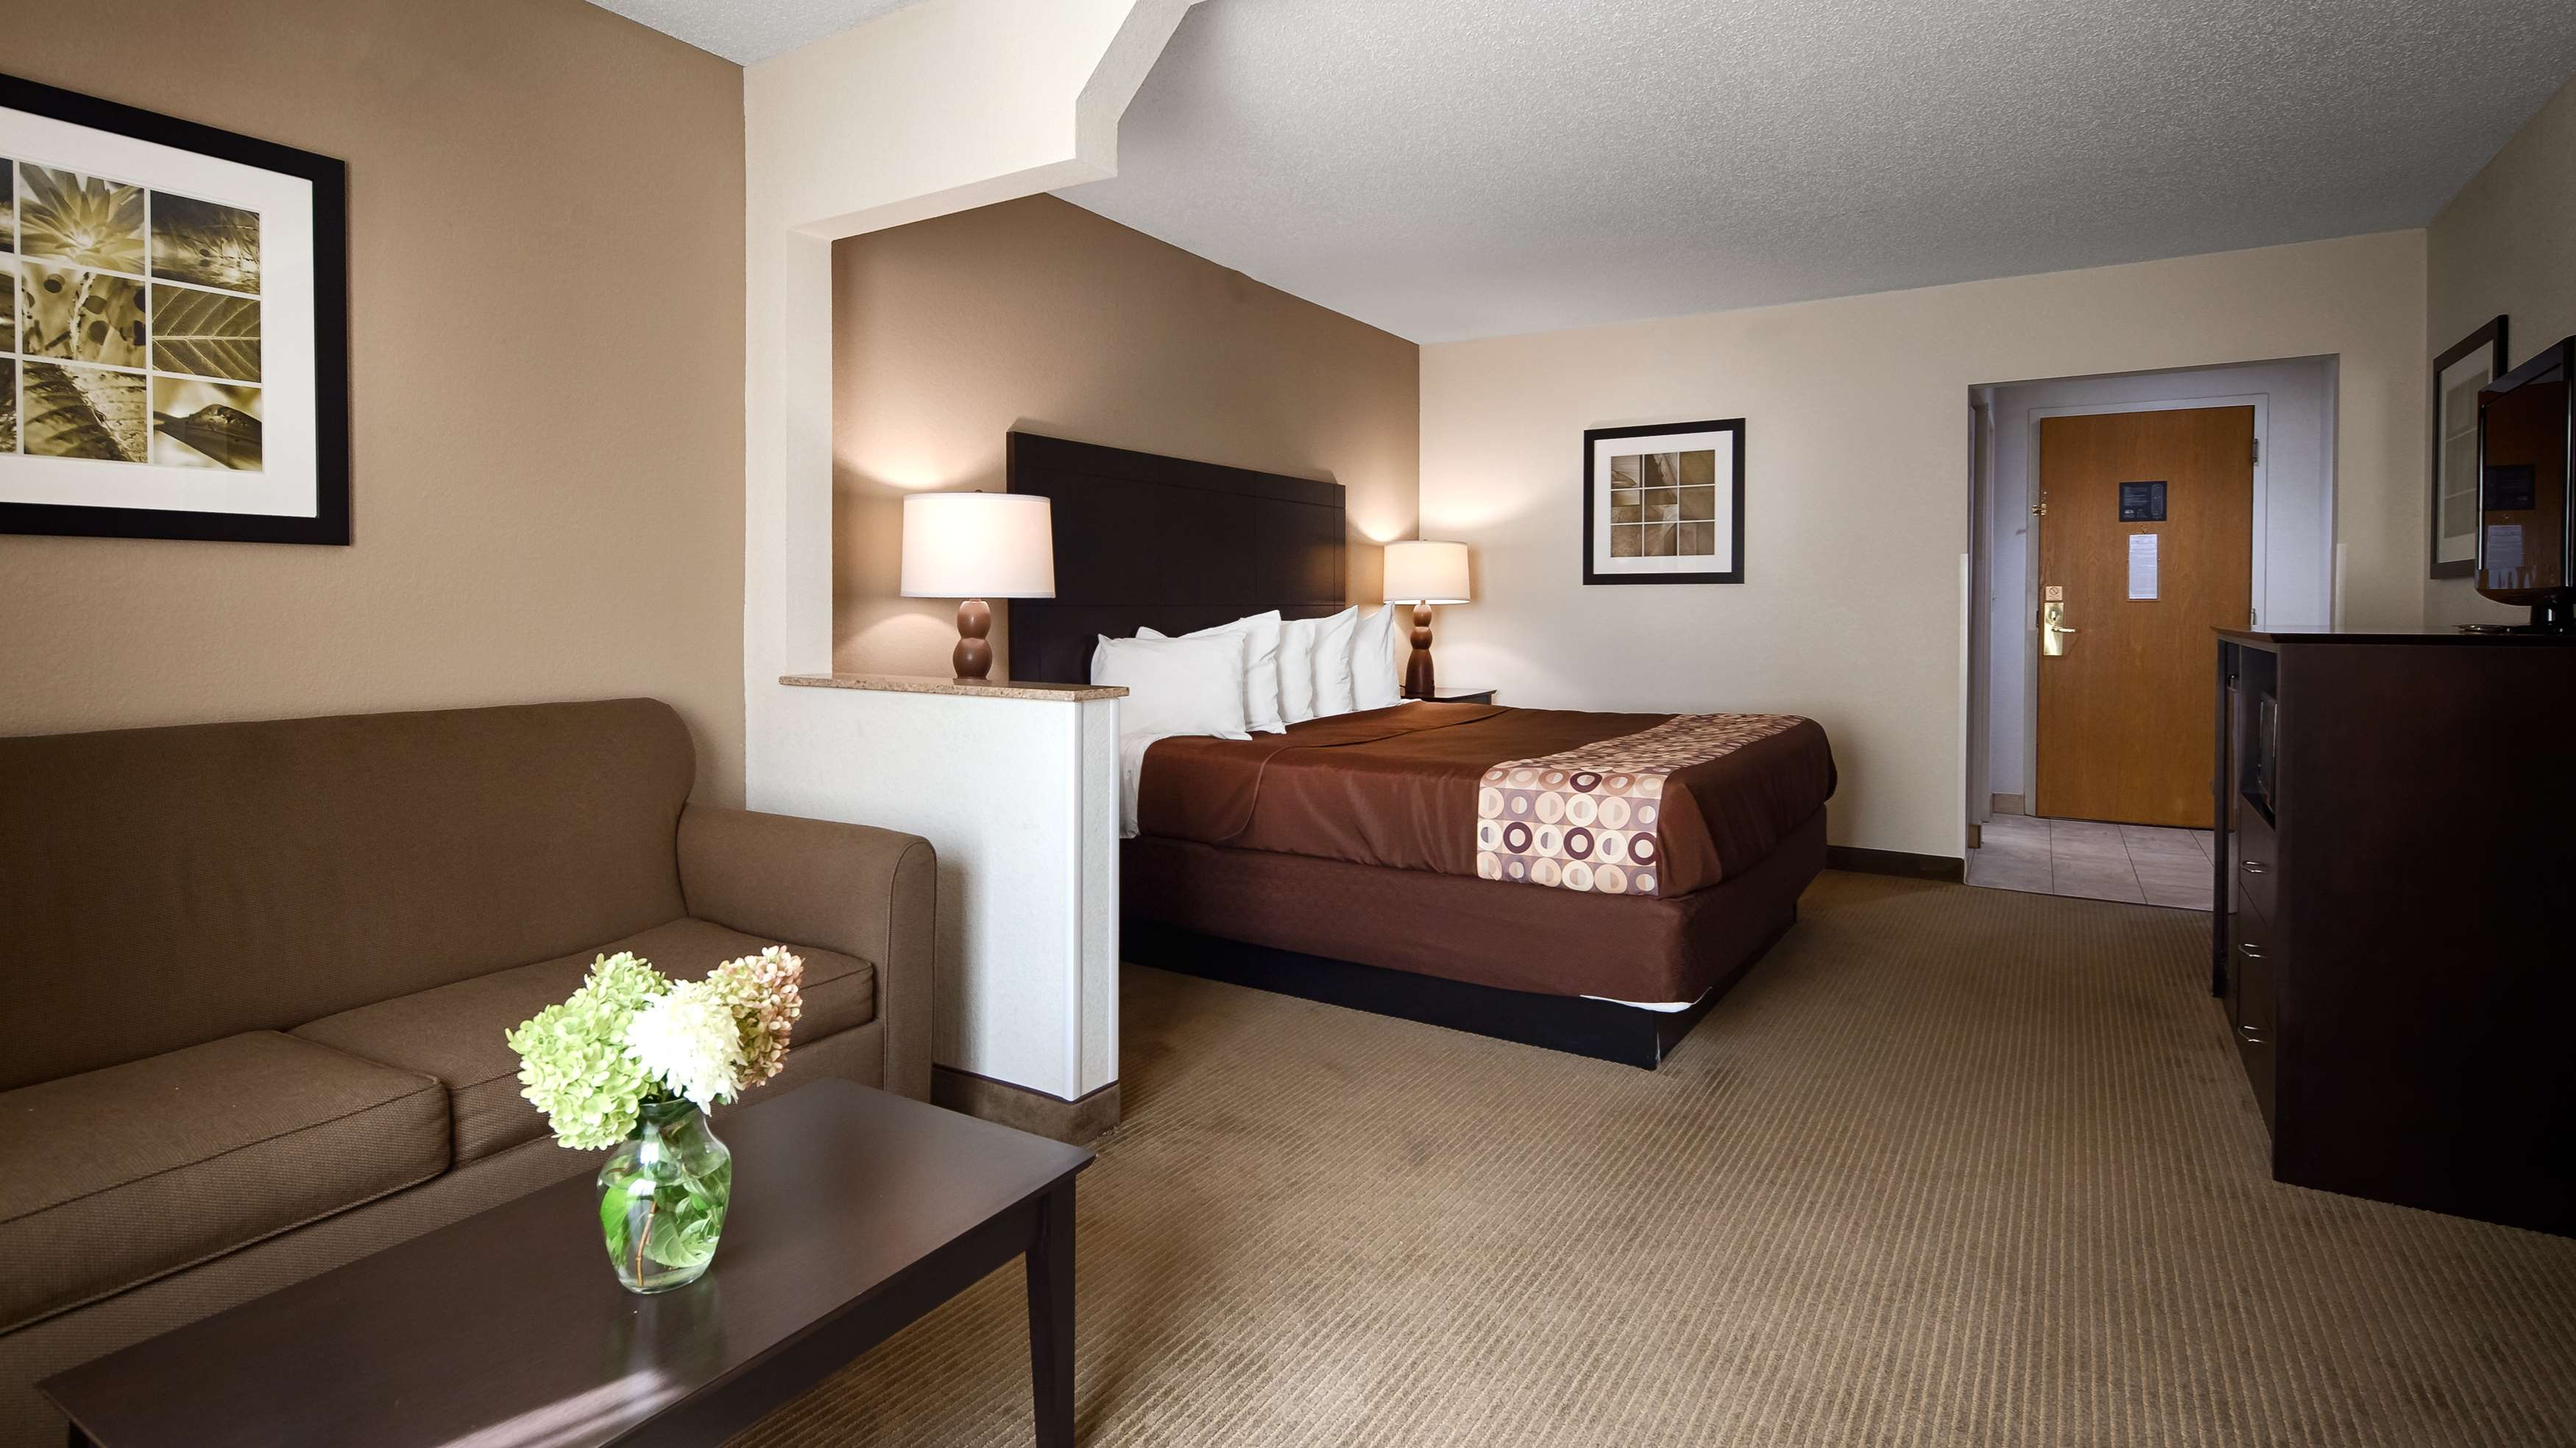 Best Western Suites image 6